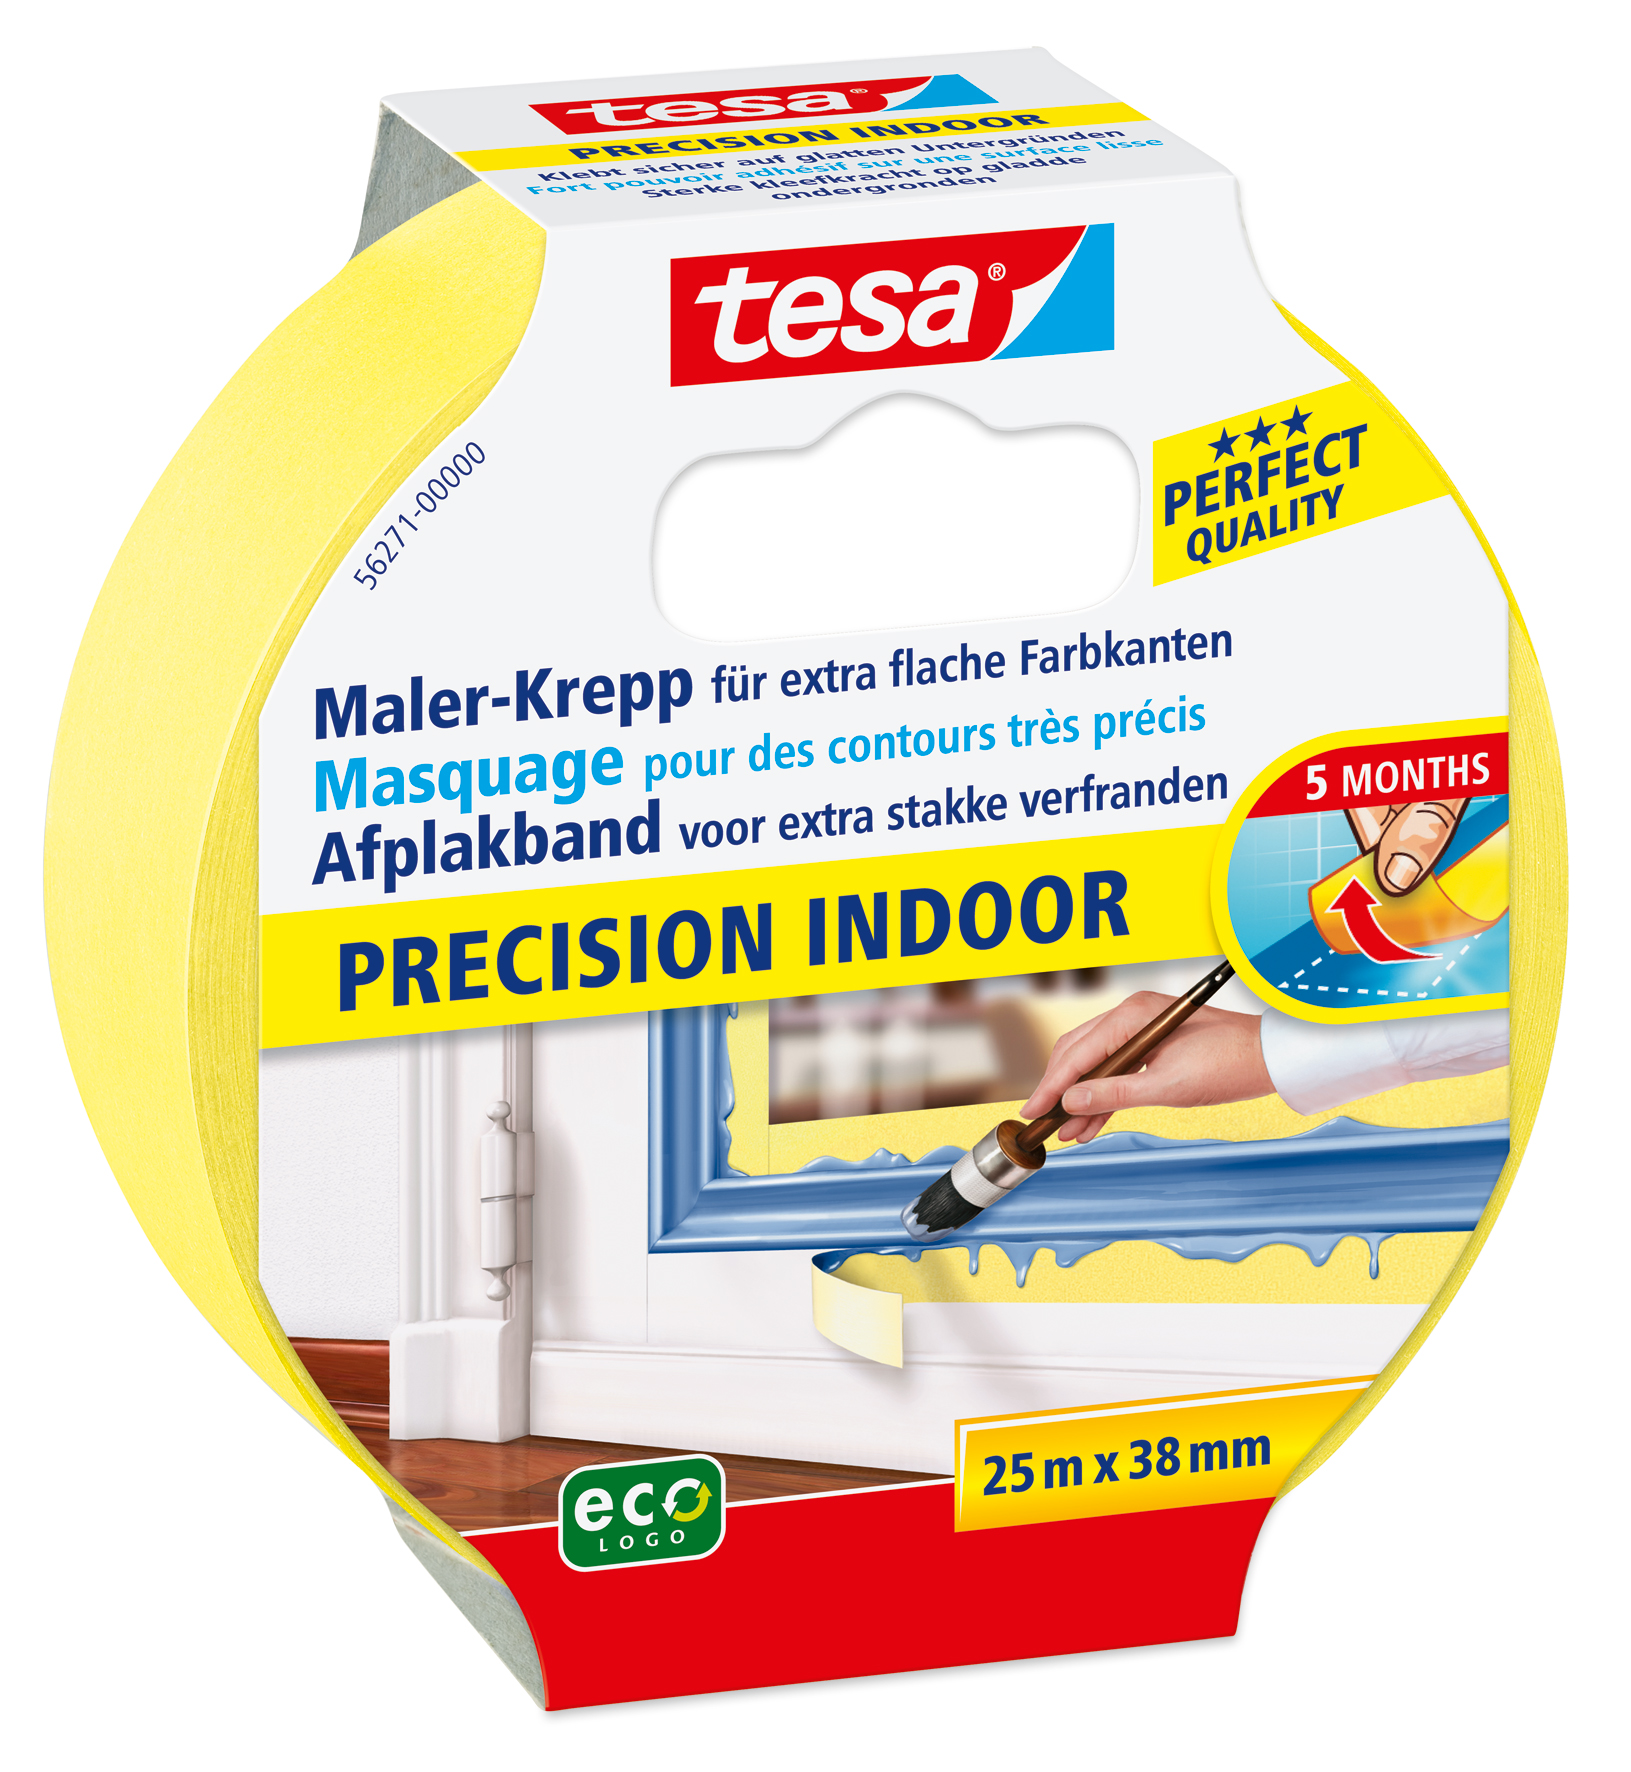 GP: 0,18 EUR/m 4 x tesa Maler-Krepp Precision Indoor 25 m x 38 mm